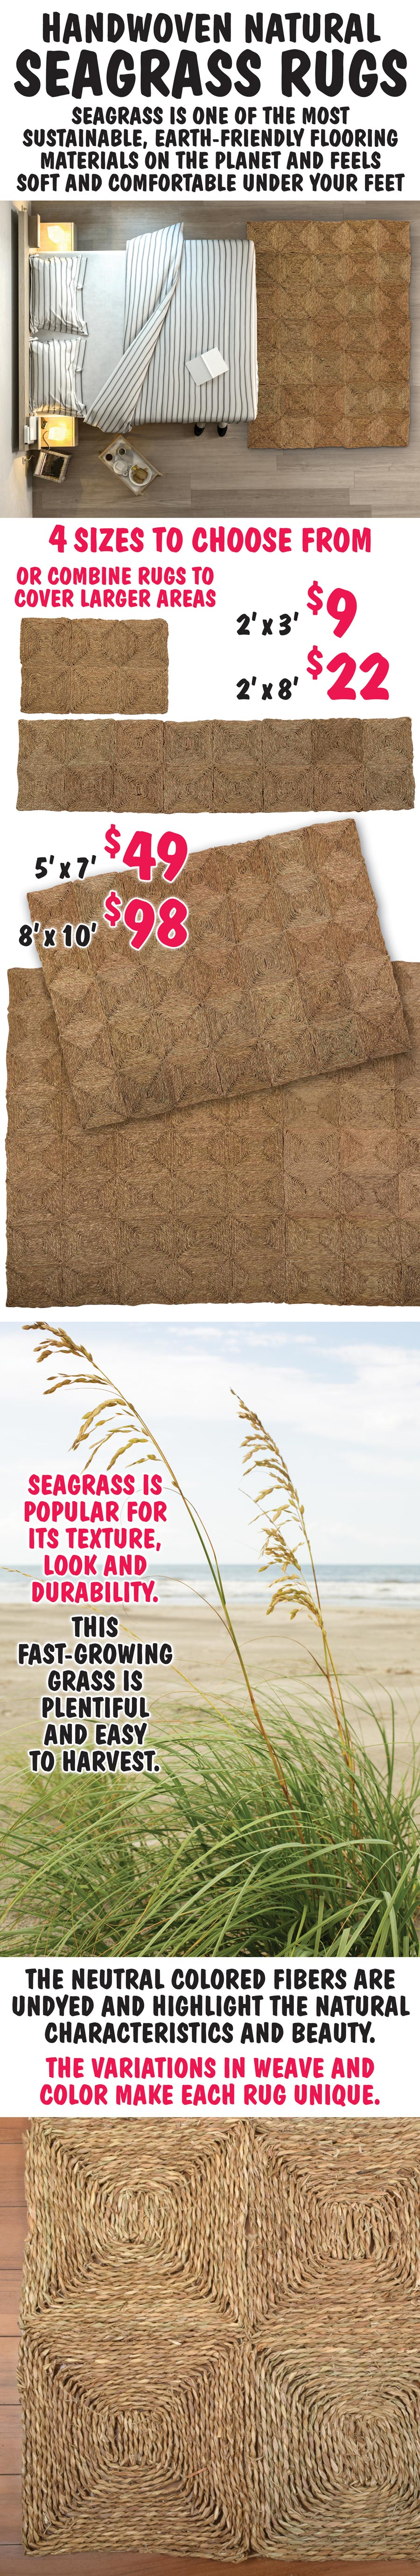 Handwoven Natural Seagrass Rugs - 4 sizes - 2 foot by 3 foot $9, 2 foot by 8 foot $22, 5 foot by 7 foot $49, 8 foot by 10 foot $98, or combine rugs to cover larger areas. seagrass is one of the most sustainable, earth-friendly flooring materials on the planet and feels soft and comfortable under your feet.